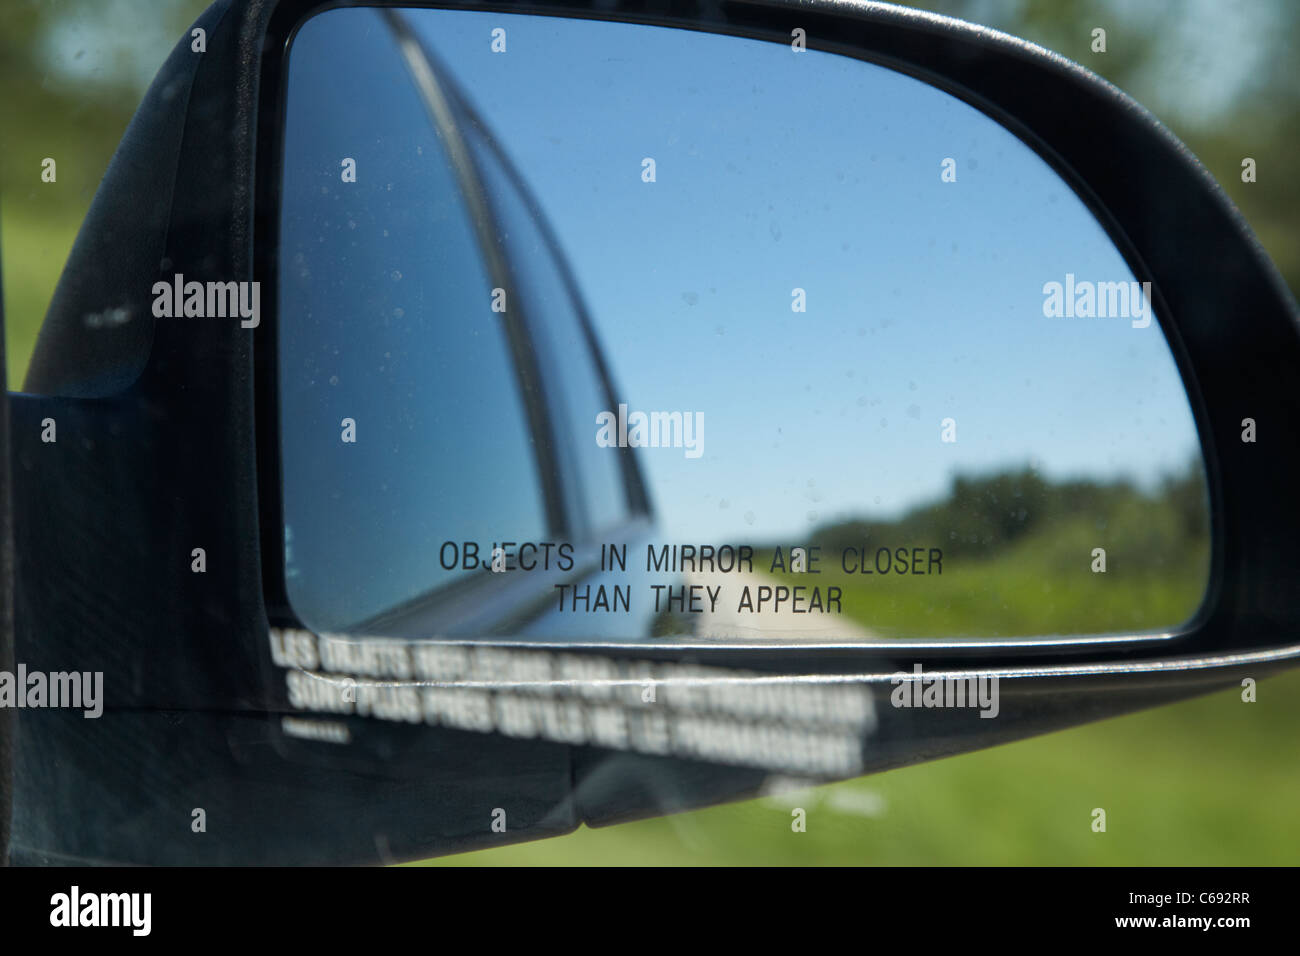 objects in mirror are closer than they appear in car side mirror on highway Canada - Stock Image